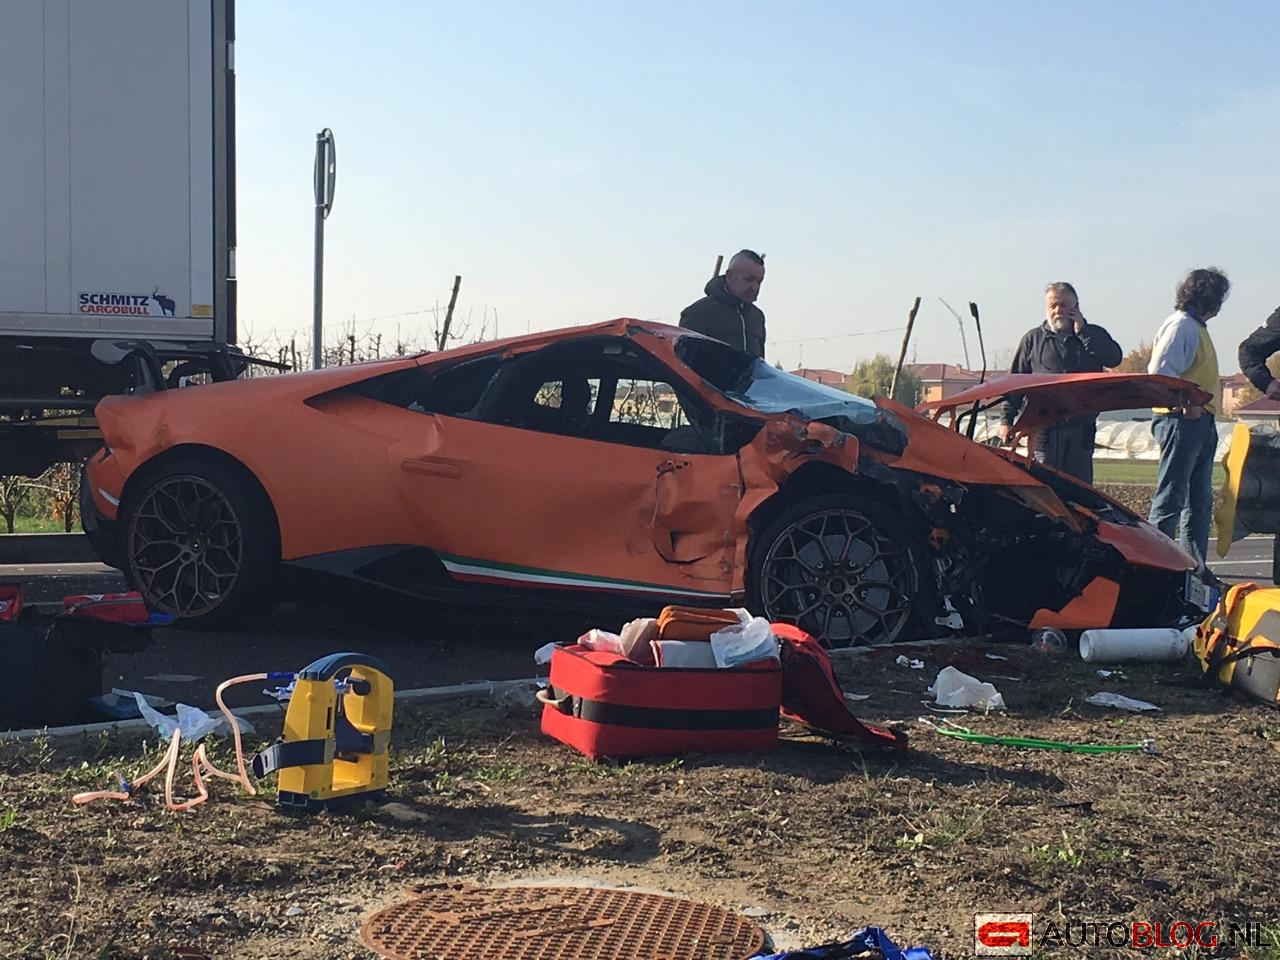 bugatti veyron production with Huracan Performante Crashed Close Lamborghini Factory on Ferrari Enzo Front Wb 1280x960 further Peugeots New Fractal Coupe Hatch likewise Why The Bugatti Chiron Probably Wont Hit 300 Mph 1796418643 furthermore 2006 Koenigsegg Ccx Instrumented Test furthermore Bugatti Chiron Suv Rendered.